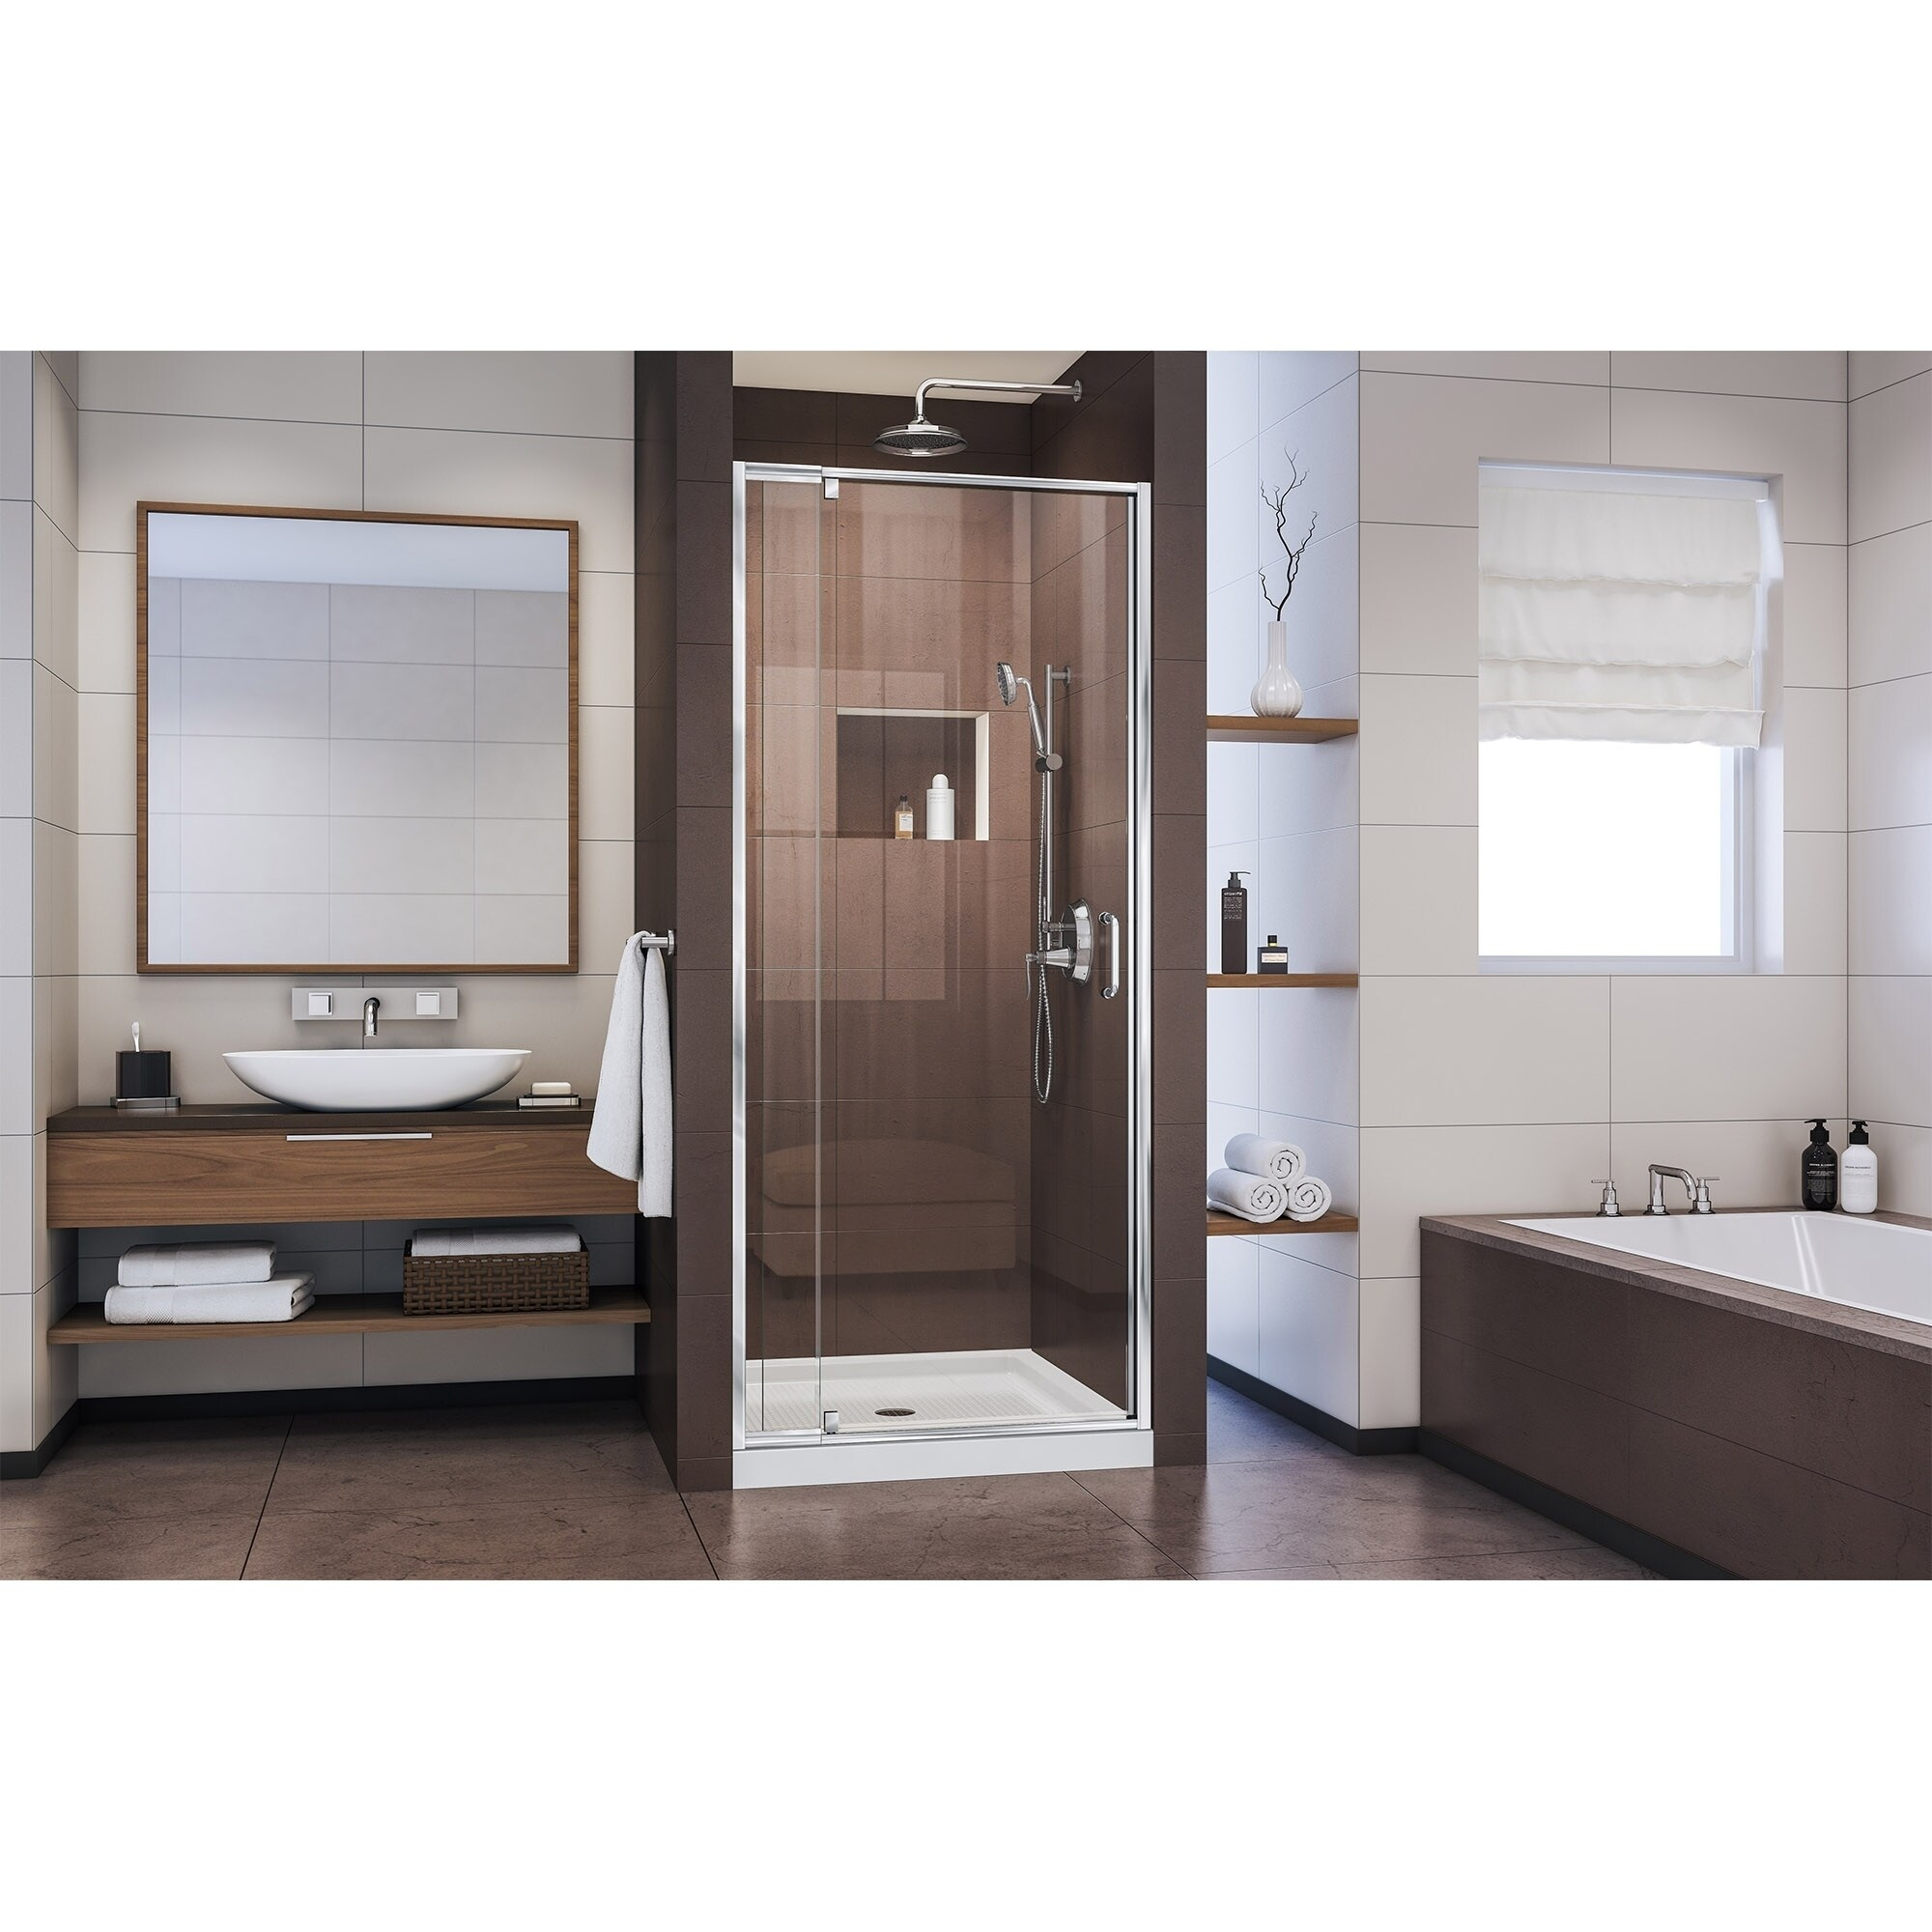 Dreamline Flex 28 32 In W X 72 In H Semi Frameless Pivot Shower Door 28 32 W